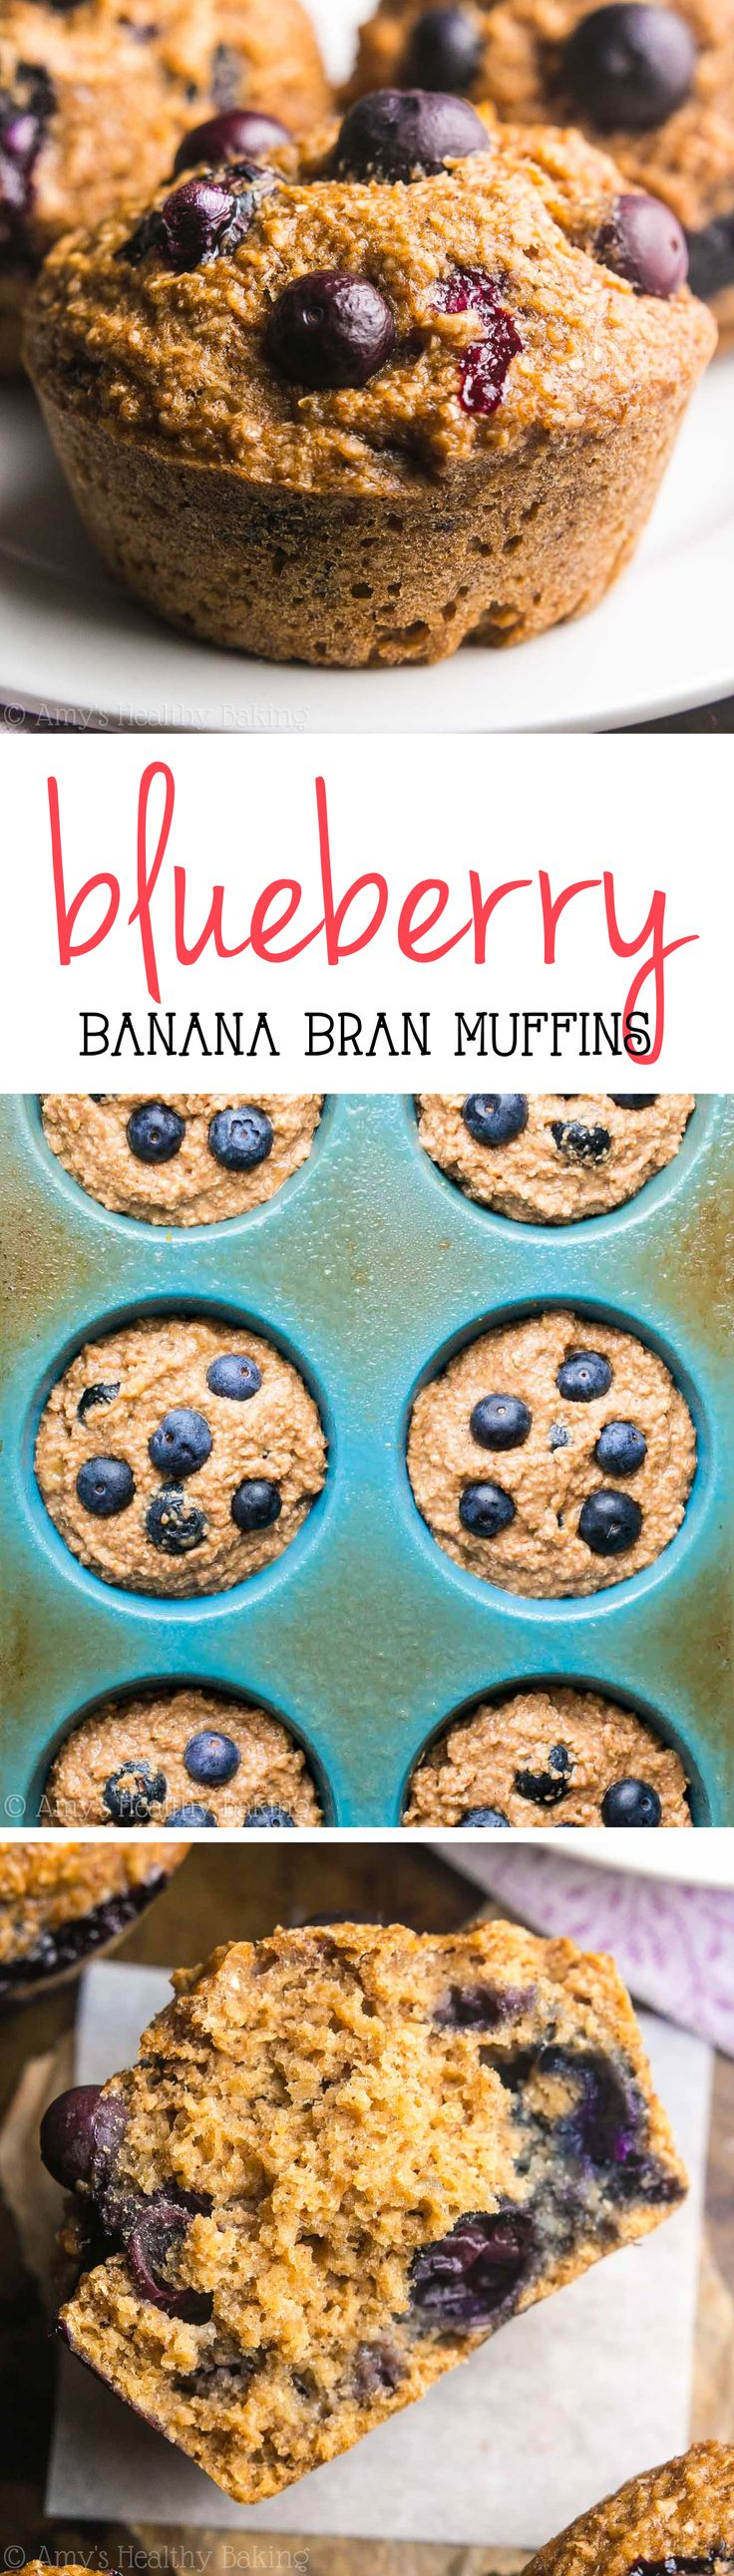 Healthy Blueberry Banana Bran Muffins -- an easy, no-fuss recipe for the most tender bran muffins you'll ever eat! Just 112 calories!